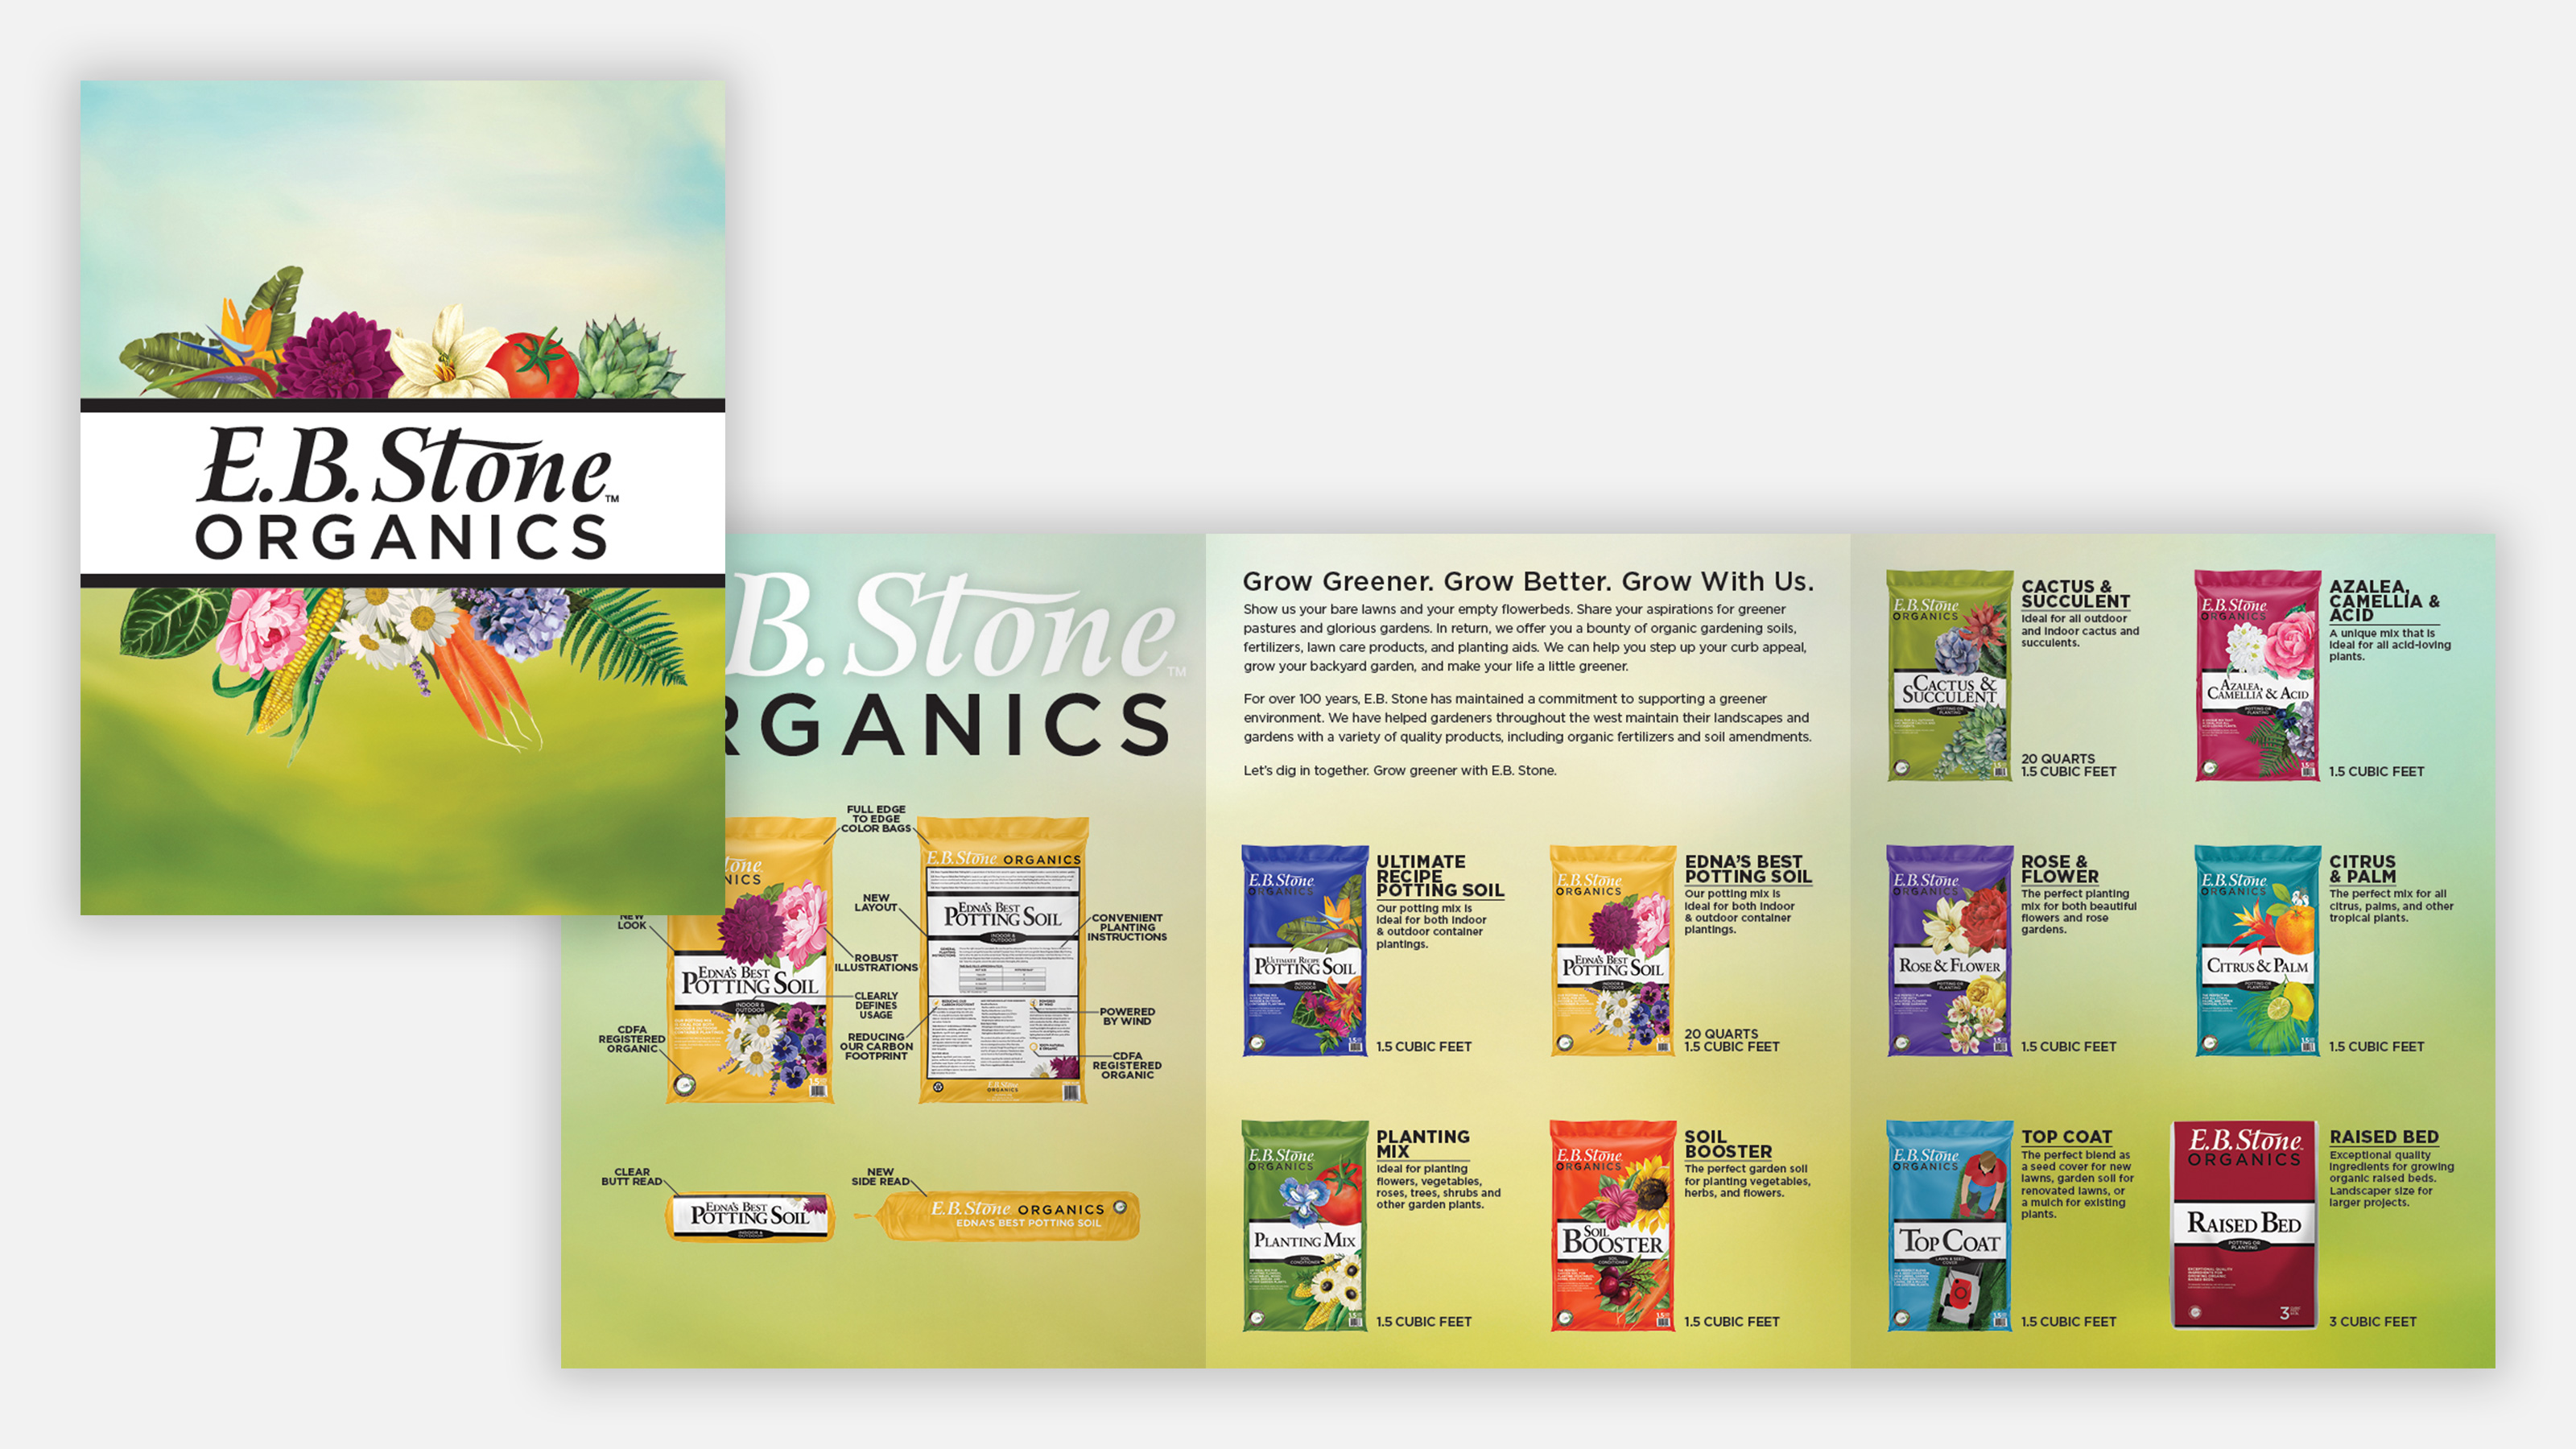 ebstone organics marketing brochures with product shots and descriptions